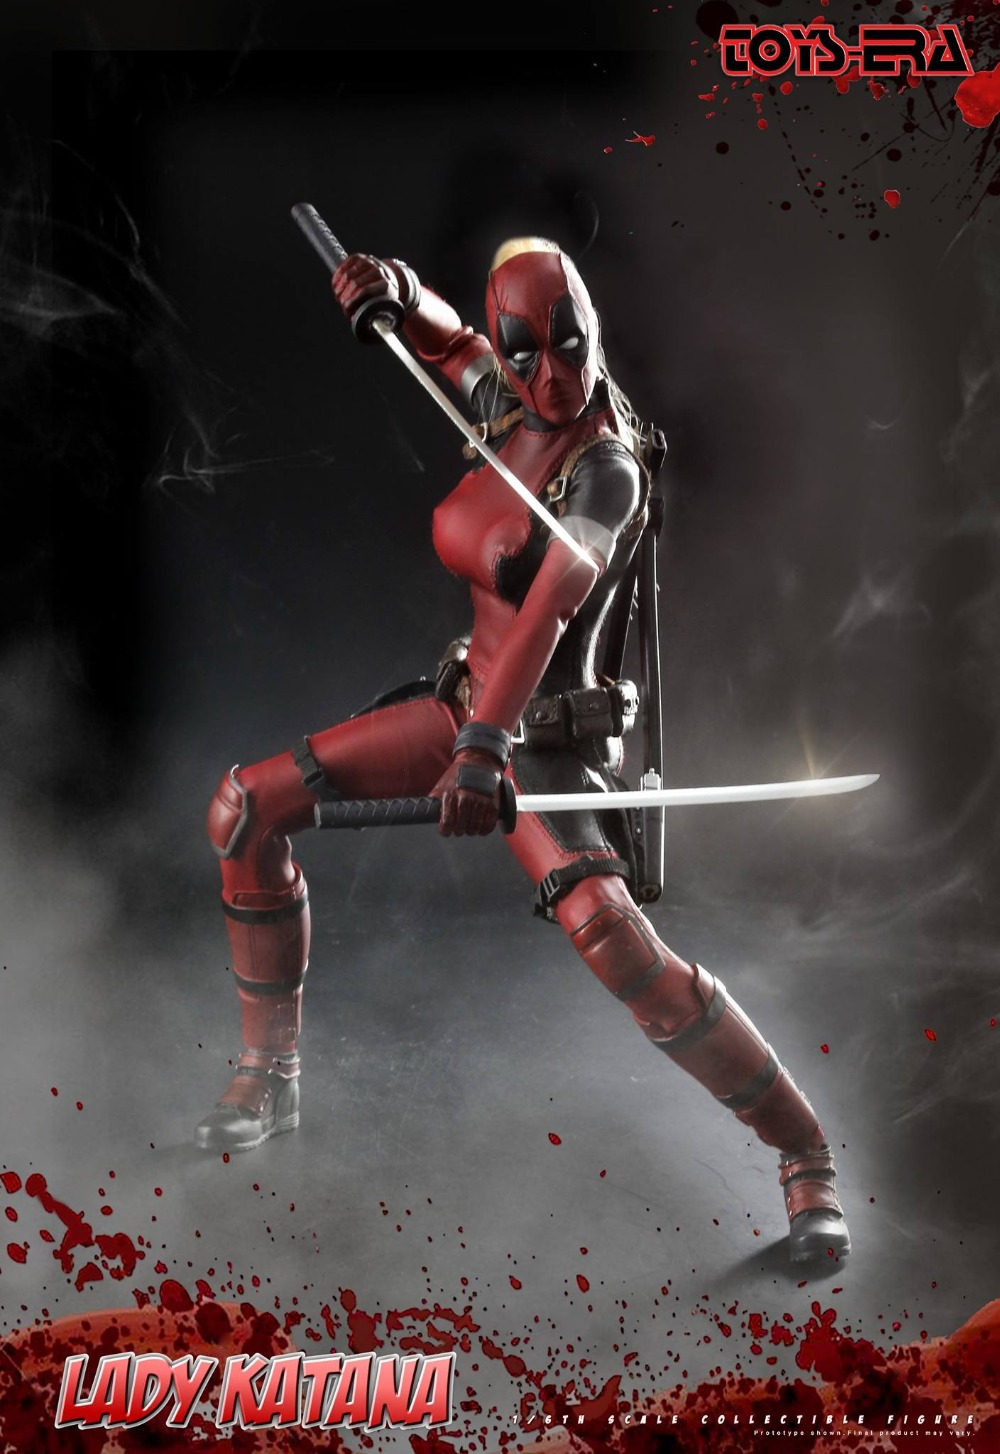 1/6 scale figure Female warrior Lady Katana in Deadpool clothing 12 Action figure doll Collectible Plastic Model Toys